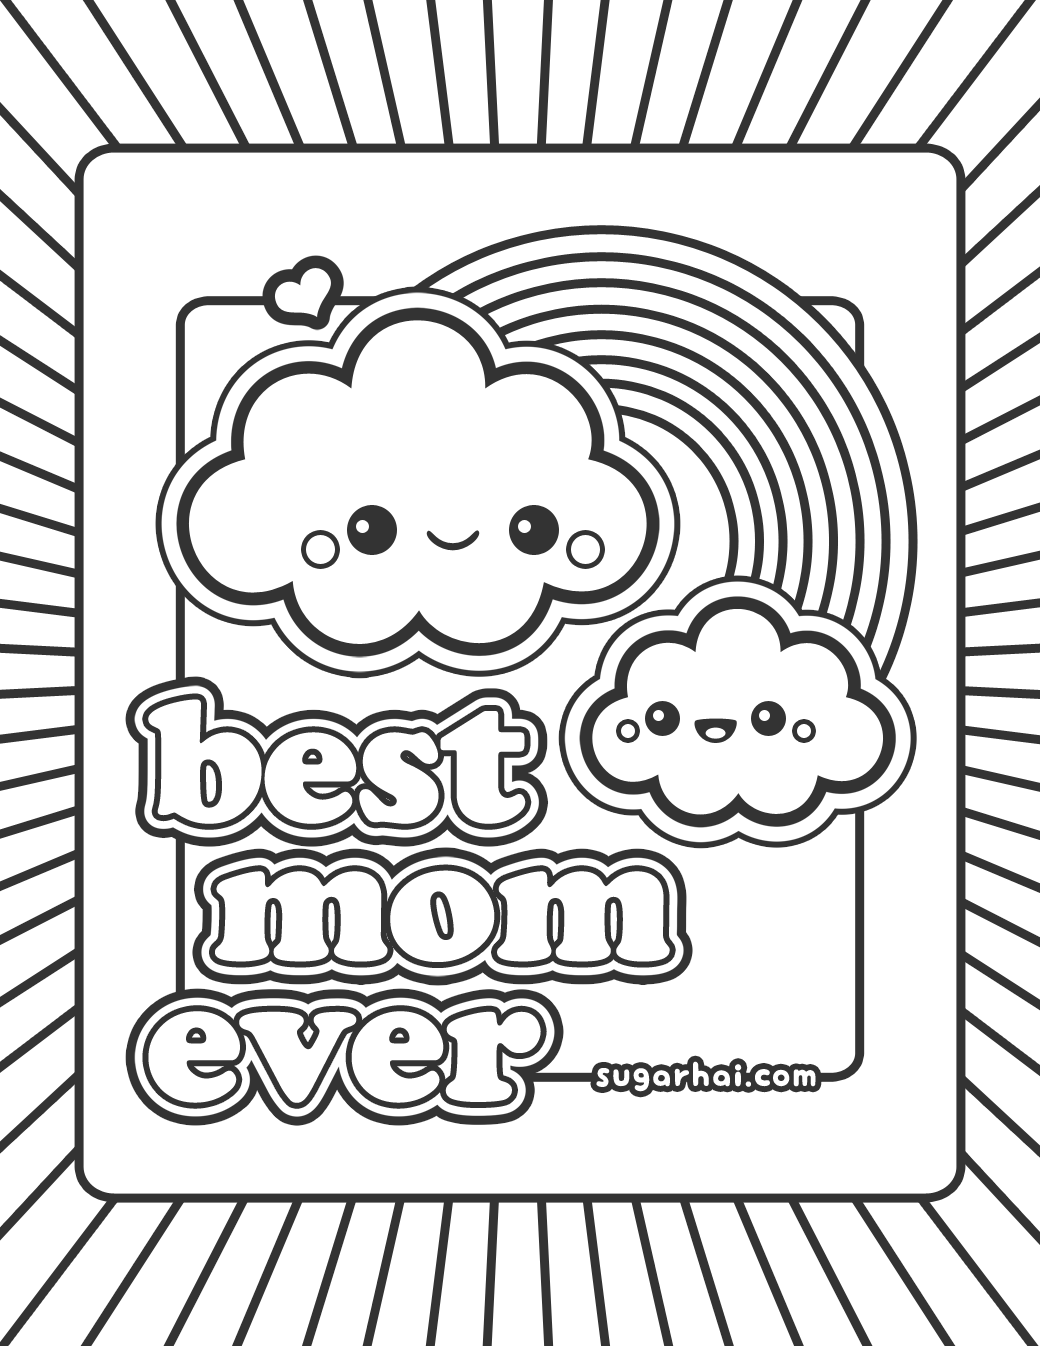 Cloud mom best mom ever